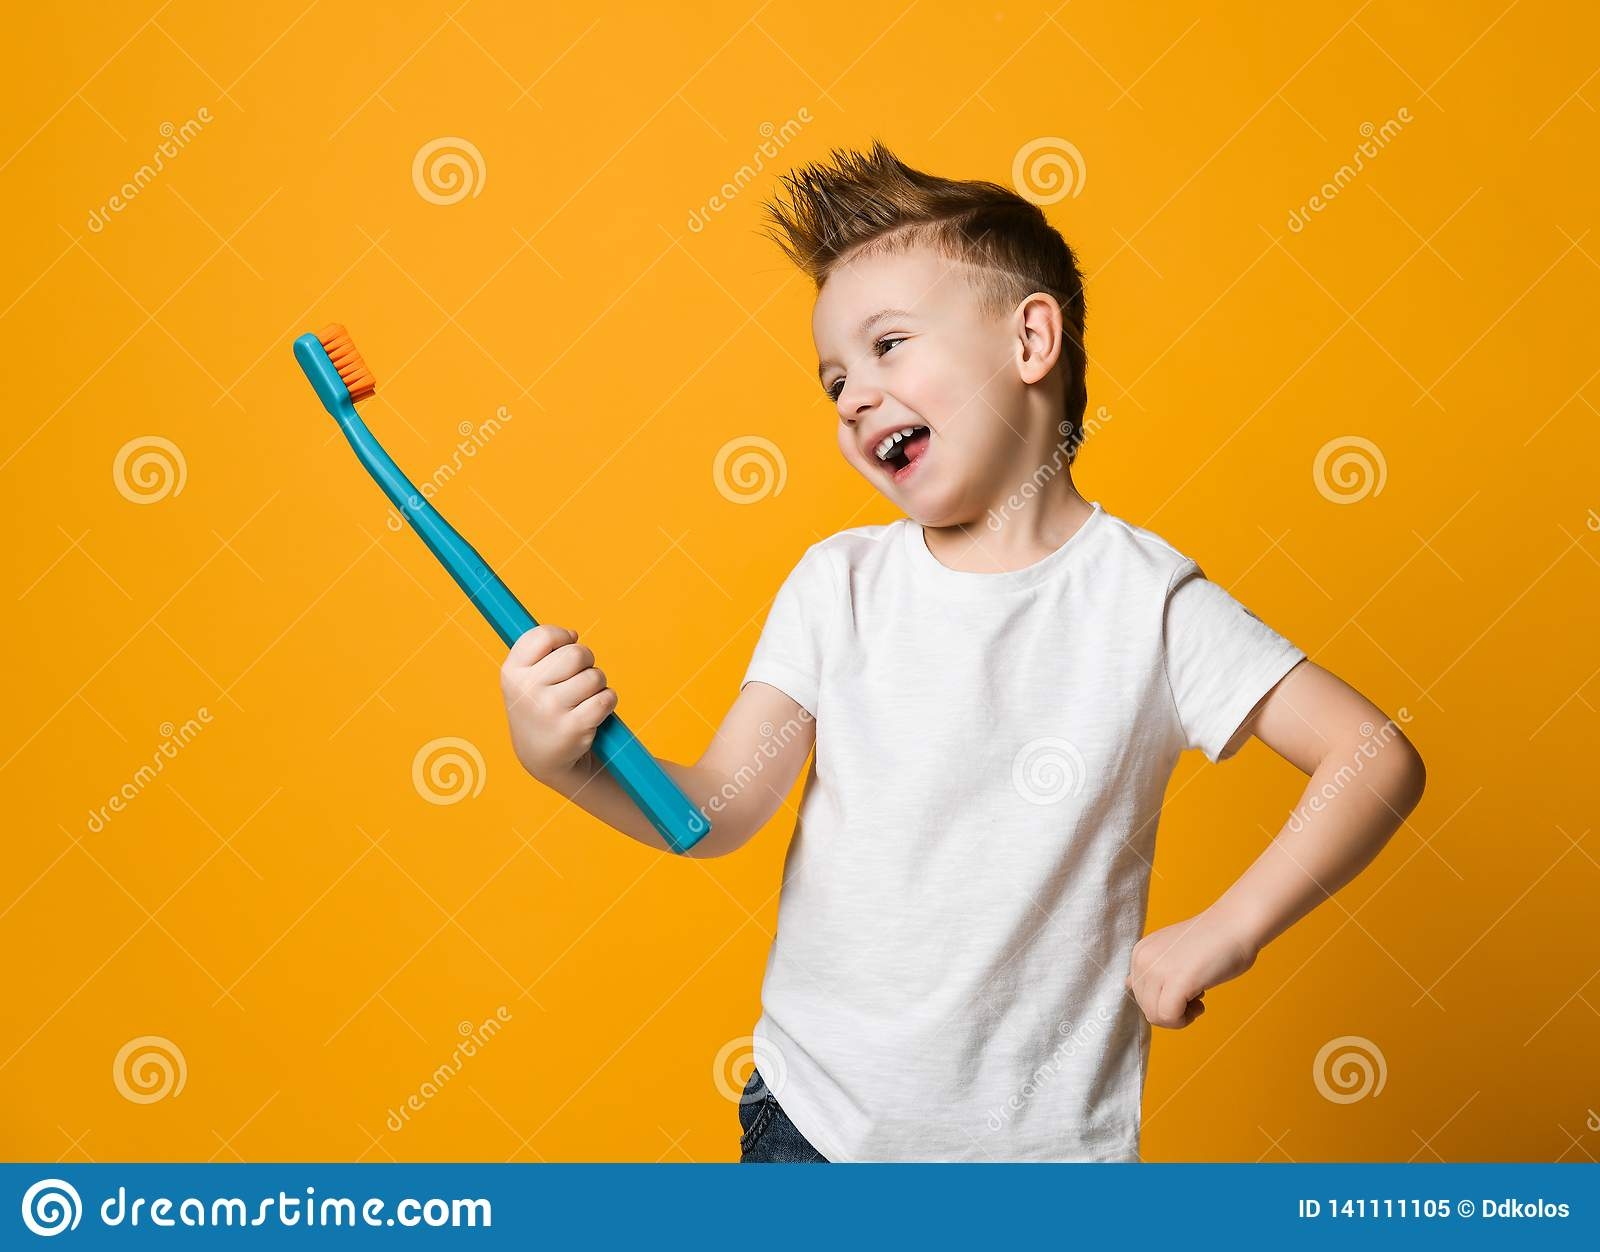 Portrait of a little boy holding a tooth brush over yellow background